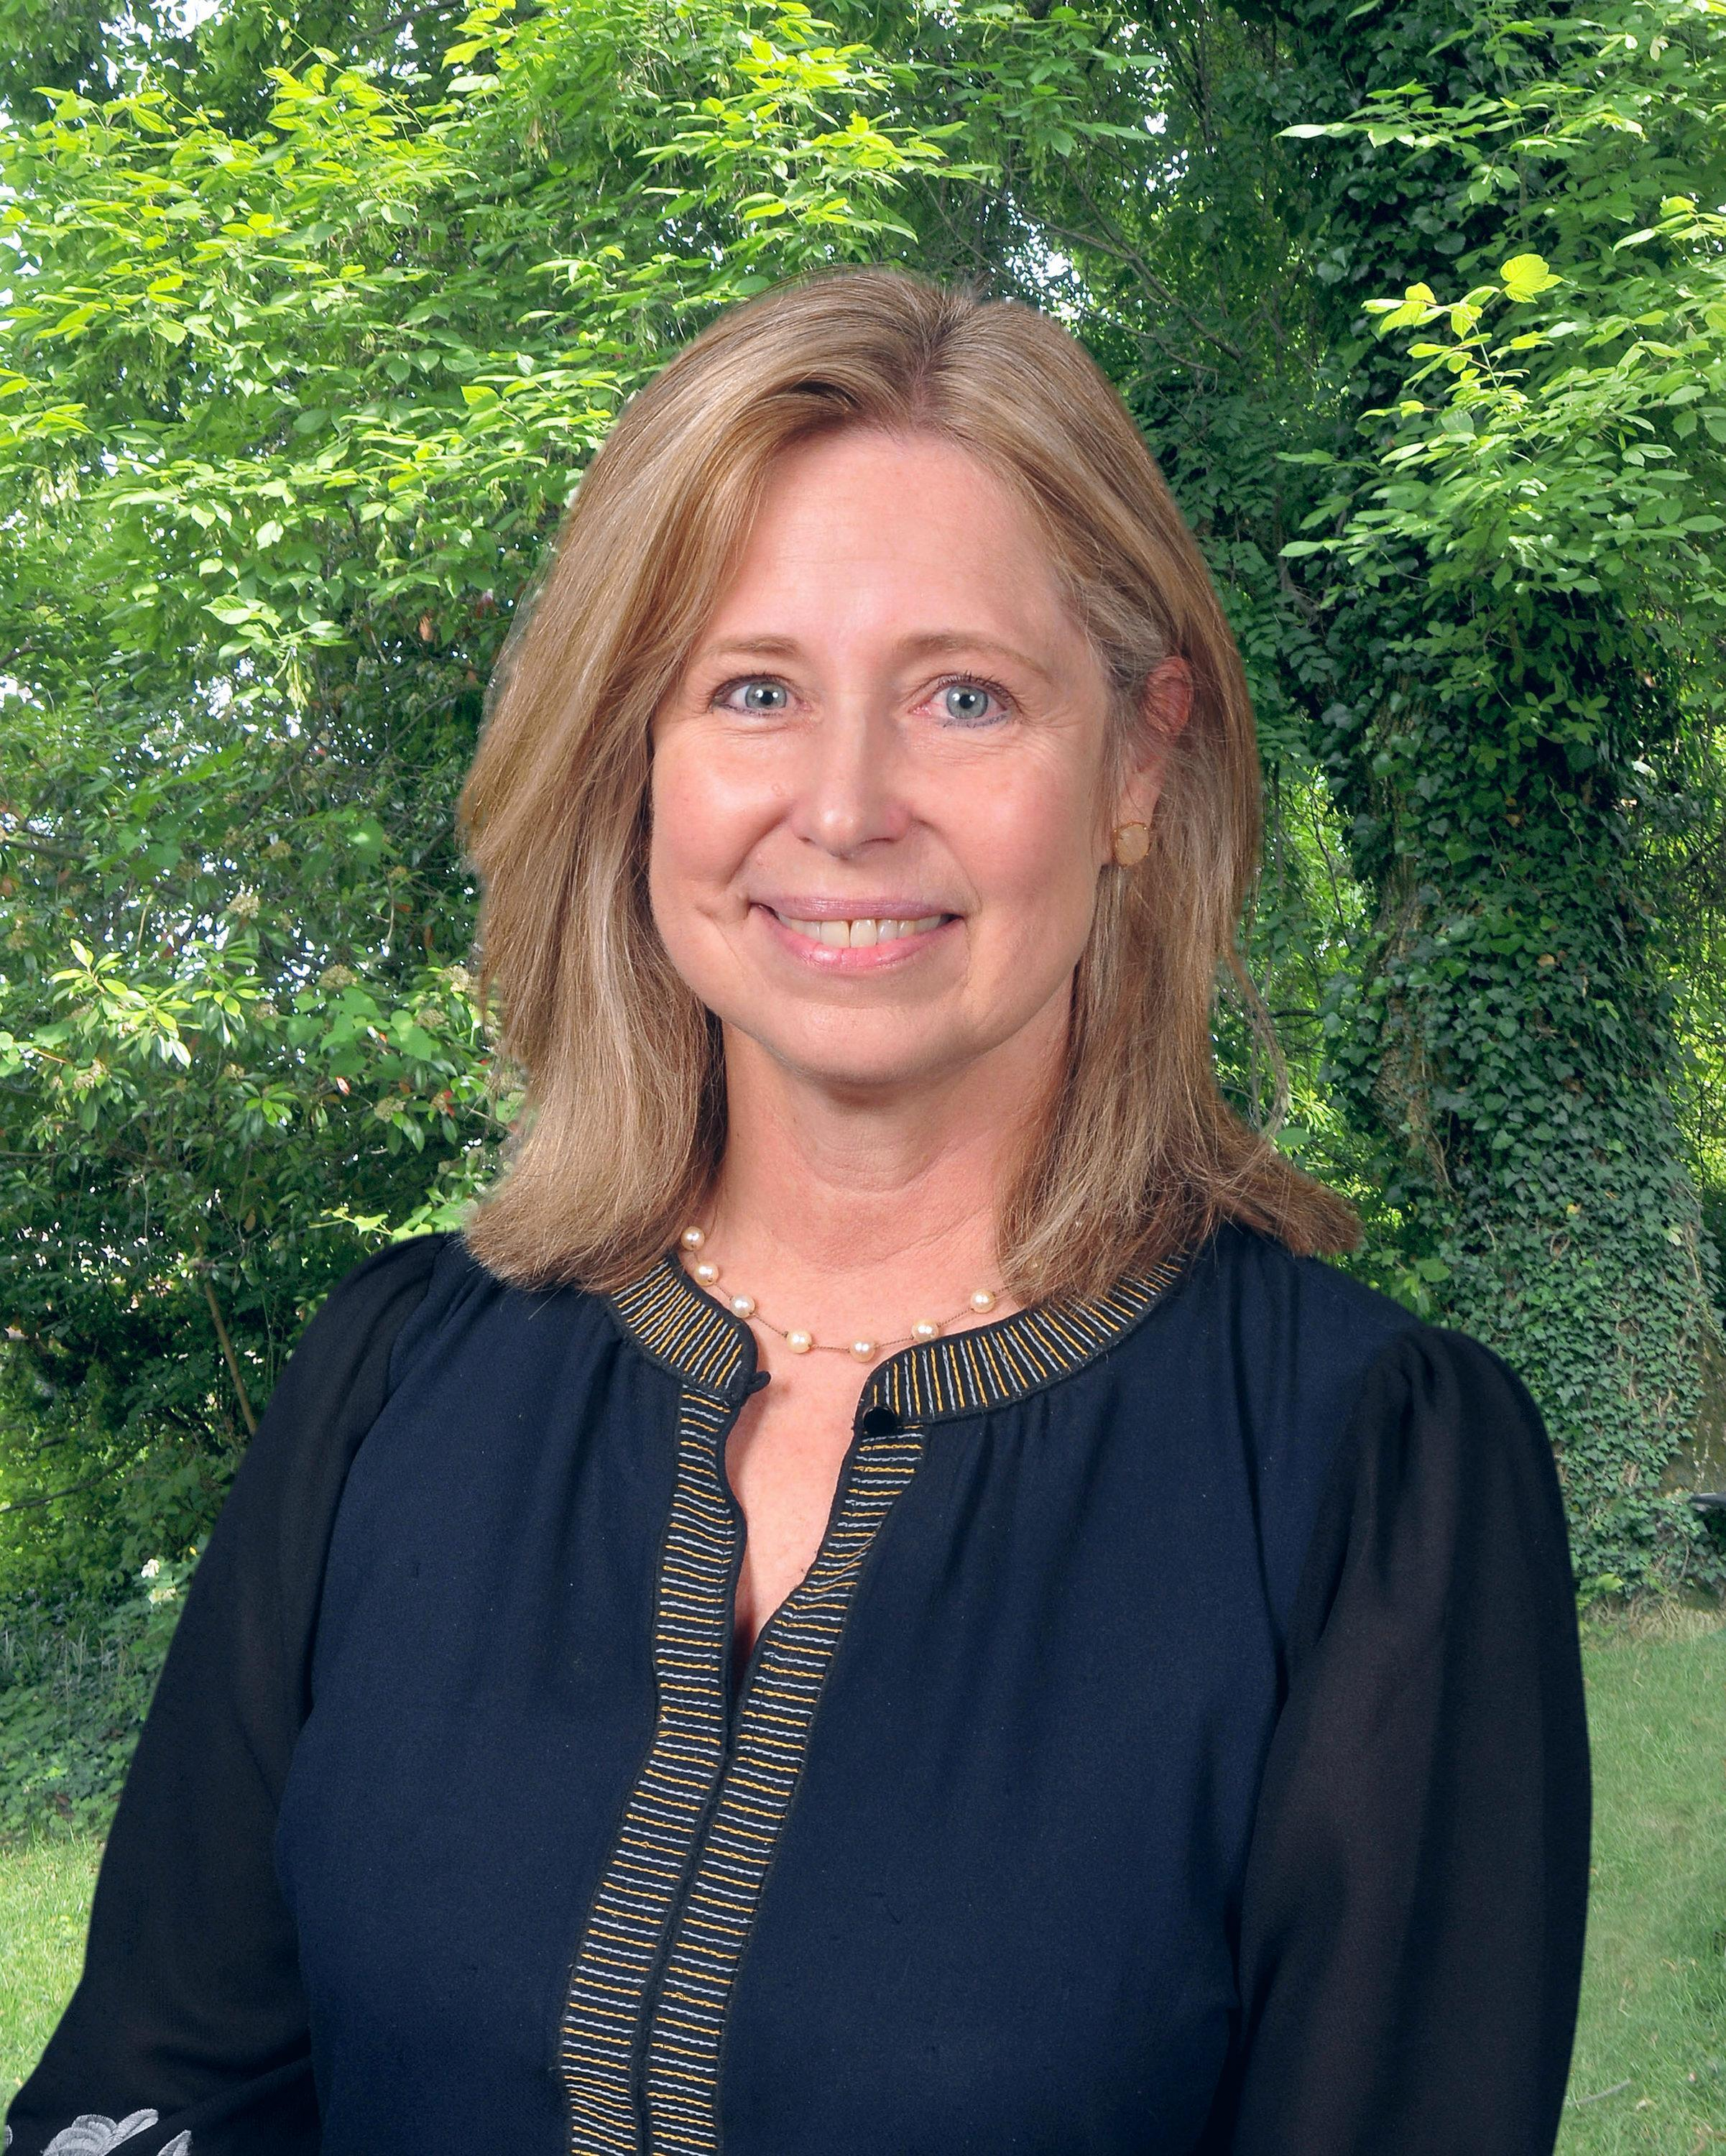 Image of Director of Admissions, Beth Hardon